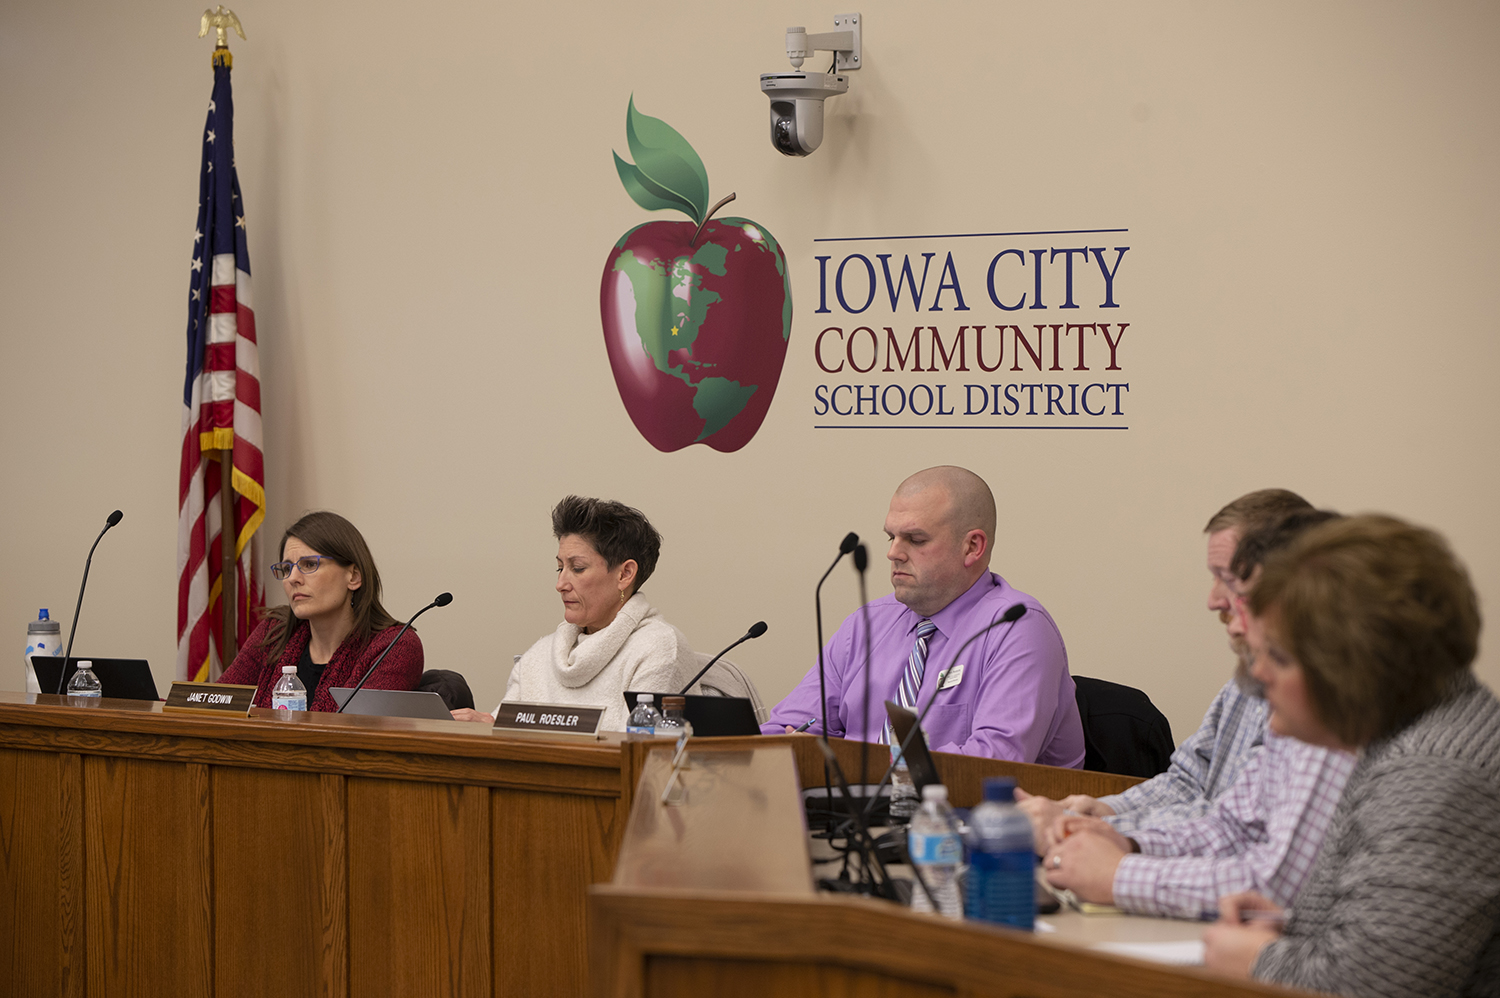 School Board members listen as people raise concerns about school rezoning at the School District Administration Building on Tuesday. At the meeting, board members voted to redraw school zones in an effort to create a more equitable learning system.